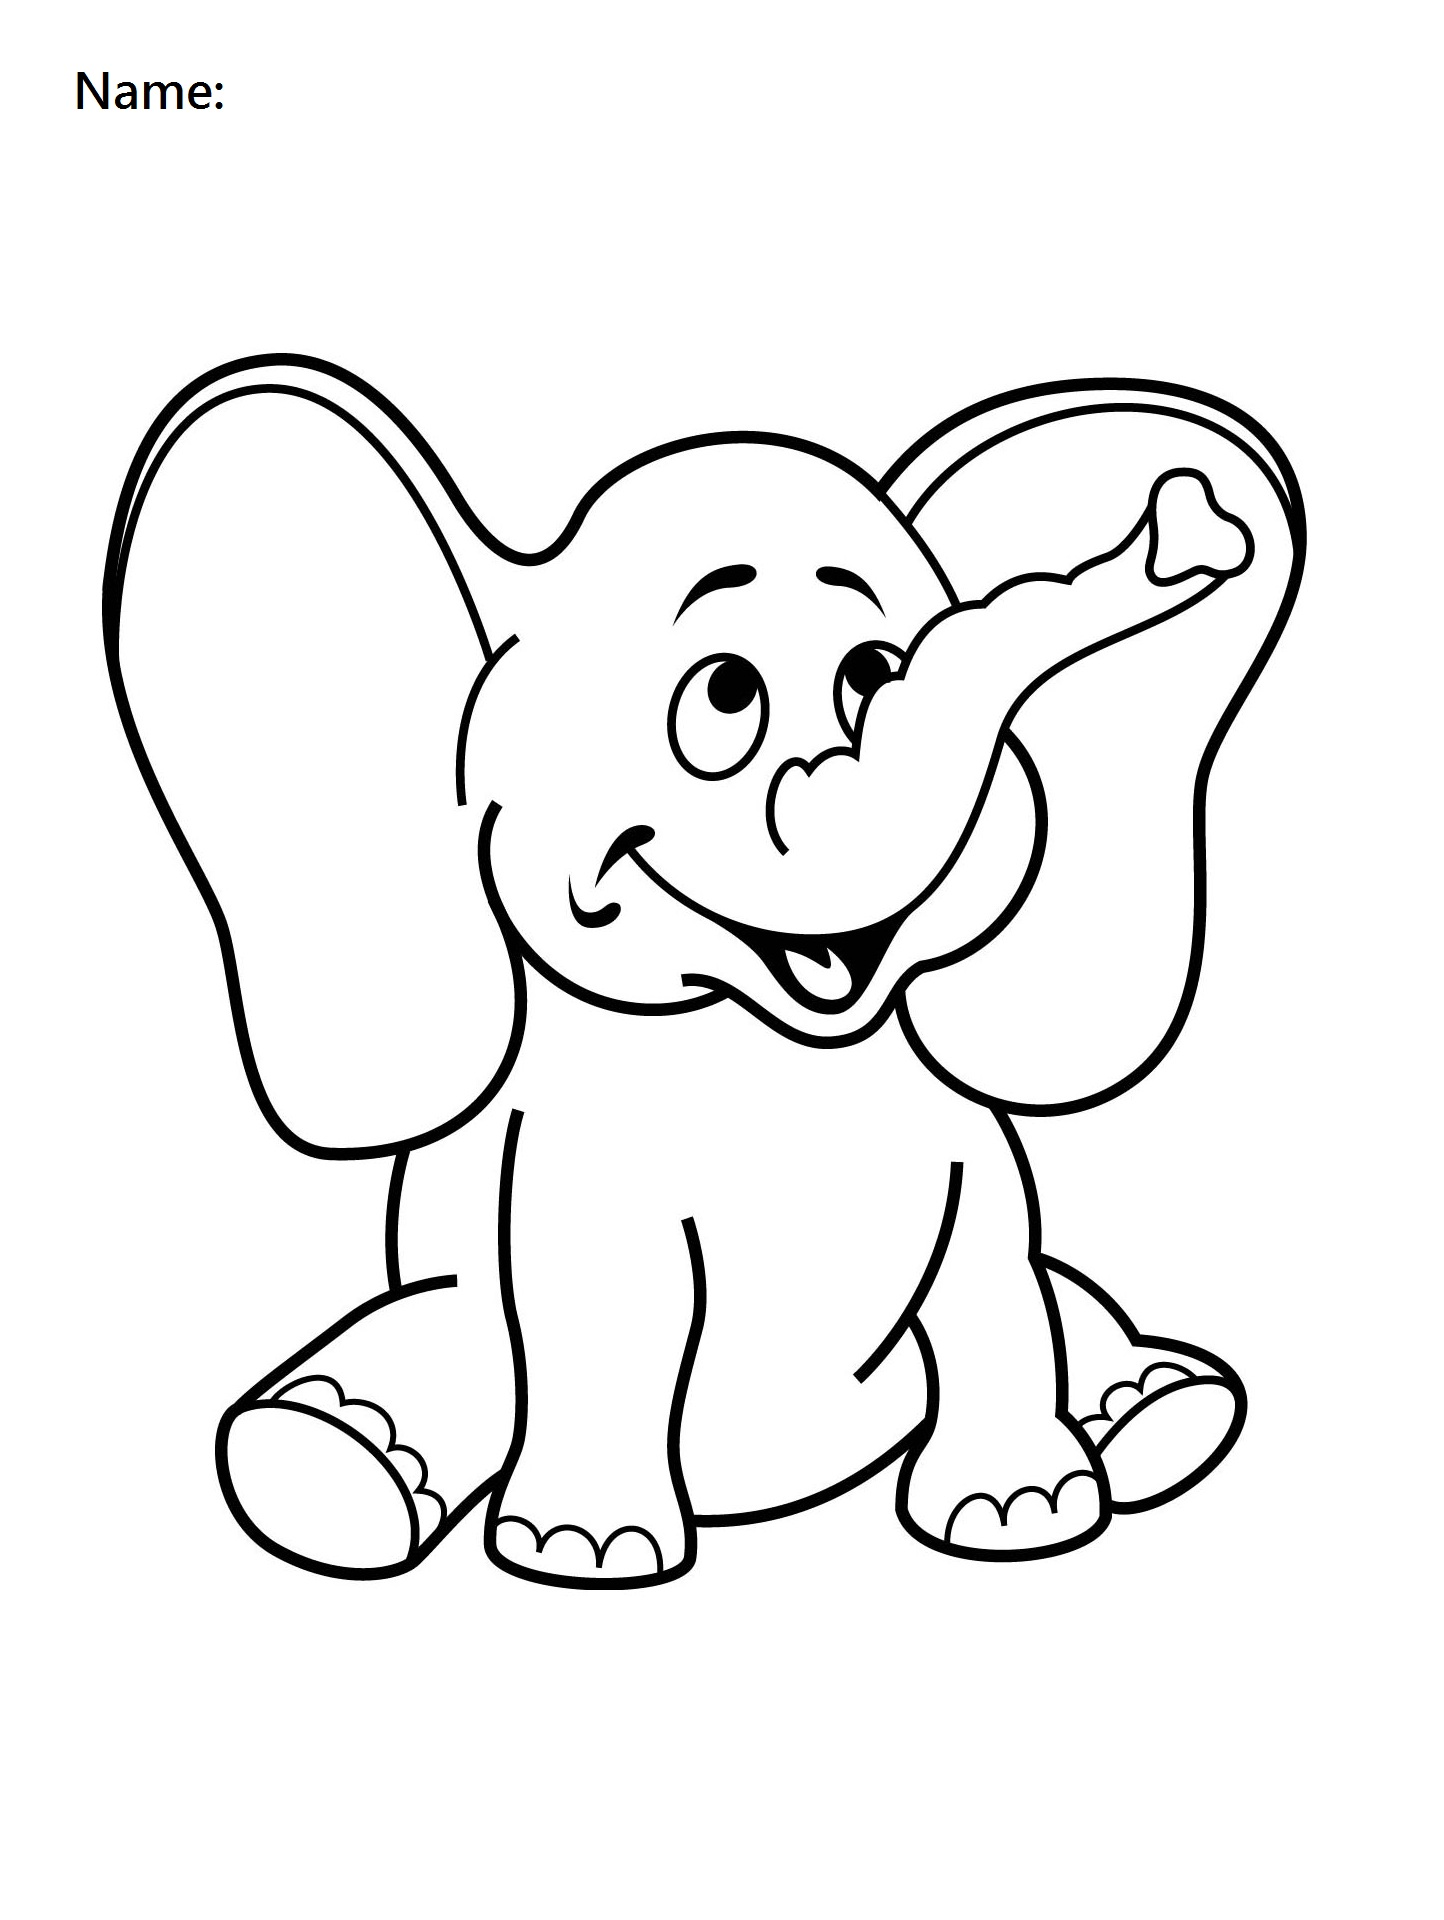 printable coloring sheets for 4 year olds 4 year old coloring pages free printable 4 year old olds printable 4 coloring sheets for year